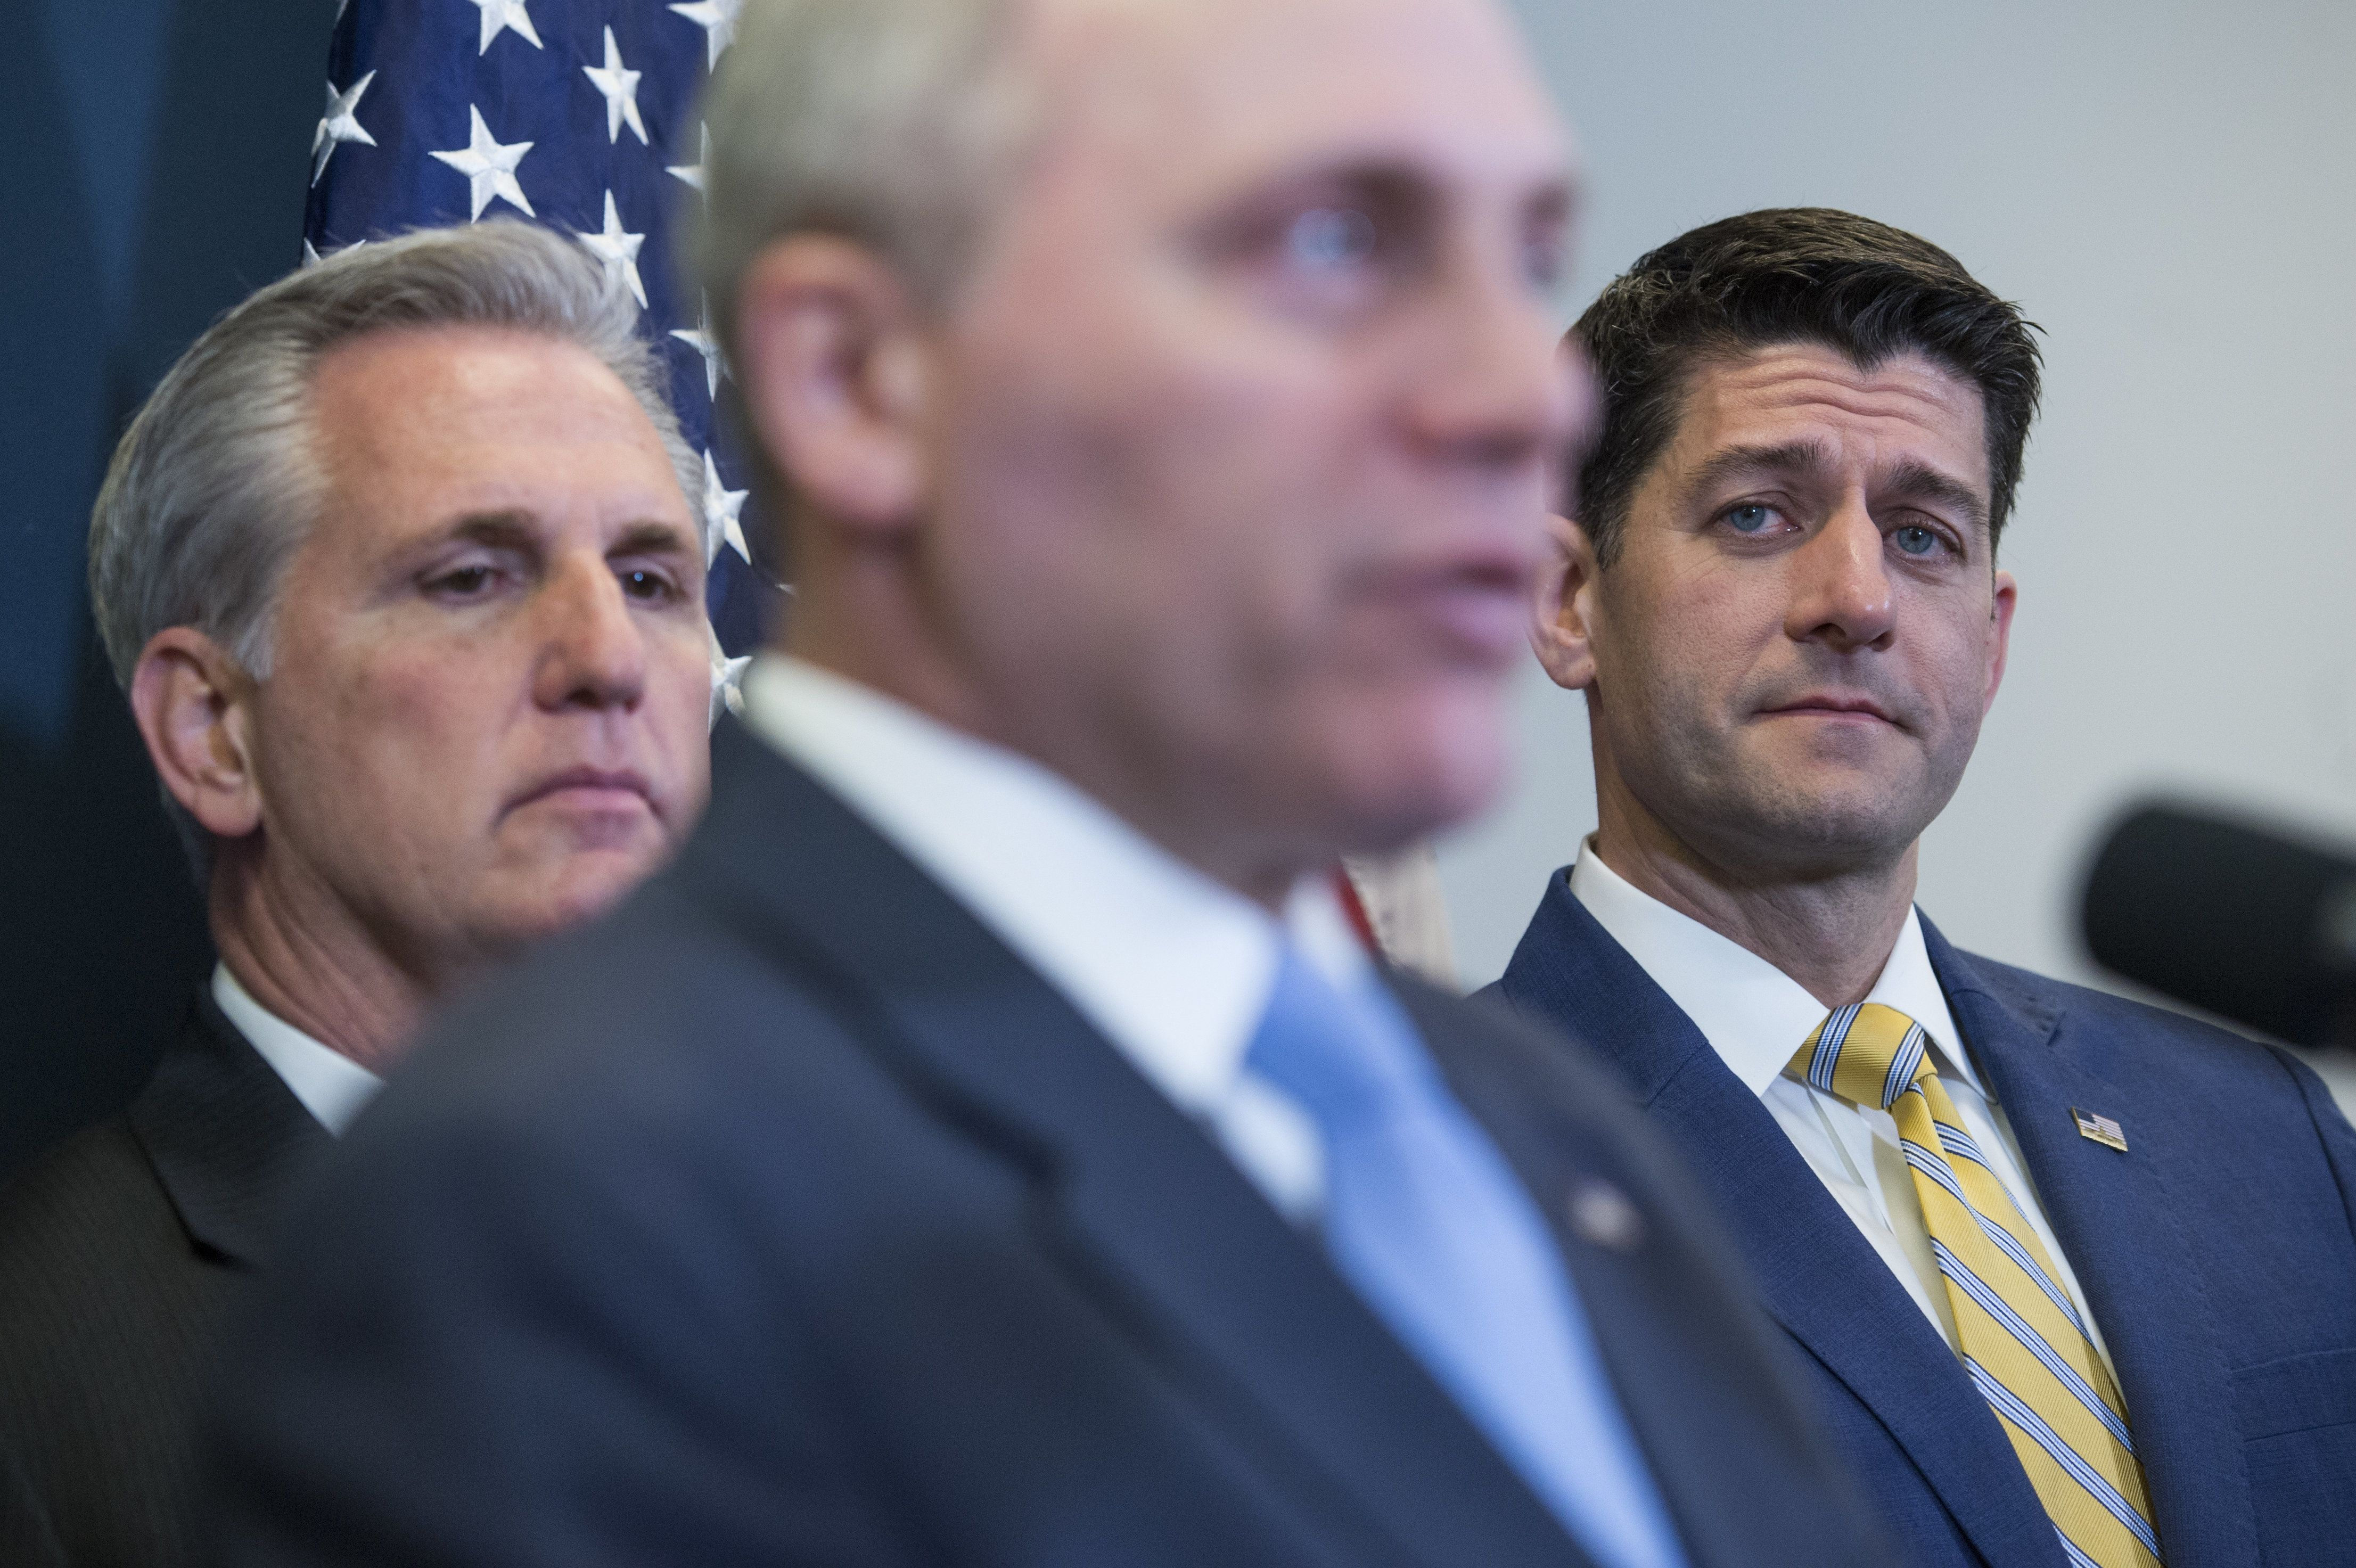 The Gop Shadow Race For The Speakership With Images Kevin Mccarthy Paul Ryan Ryan